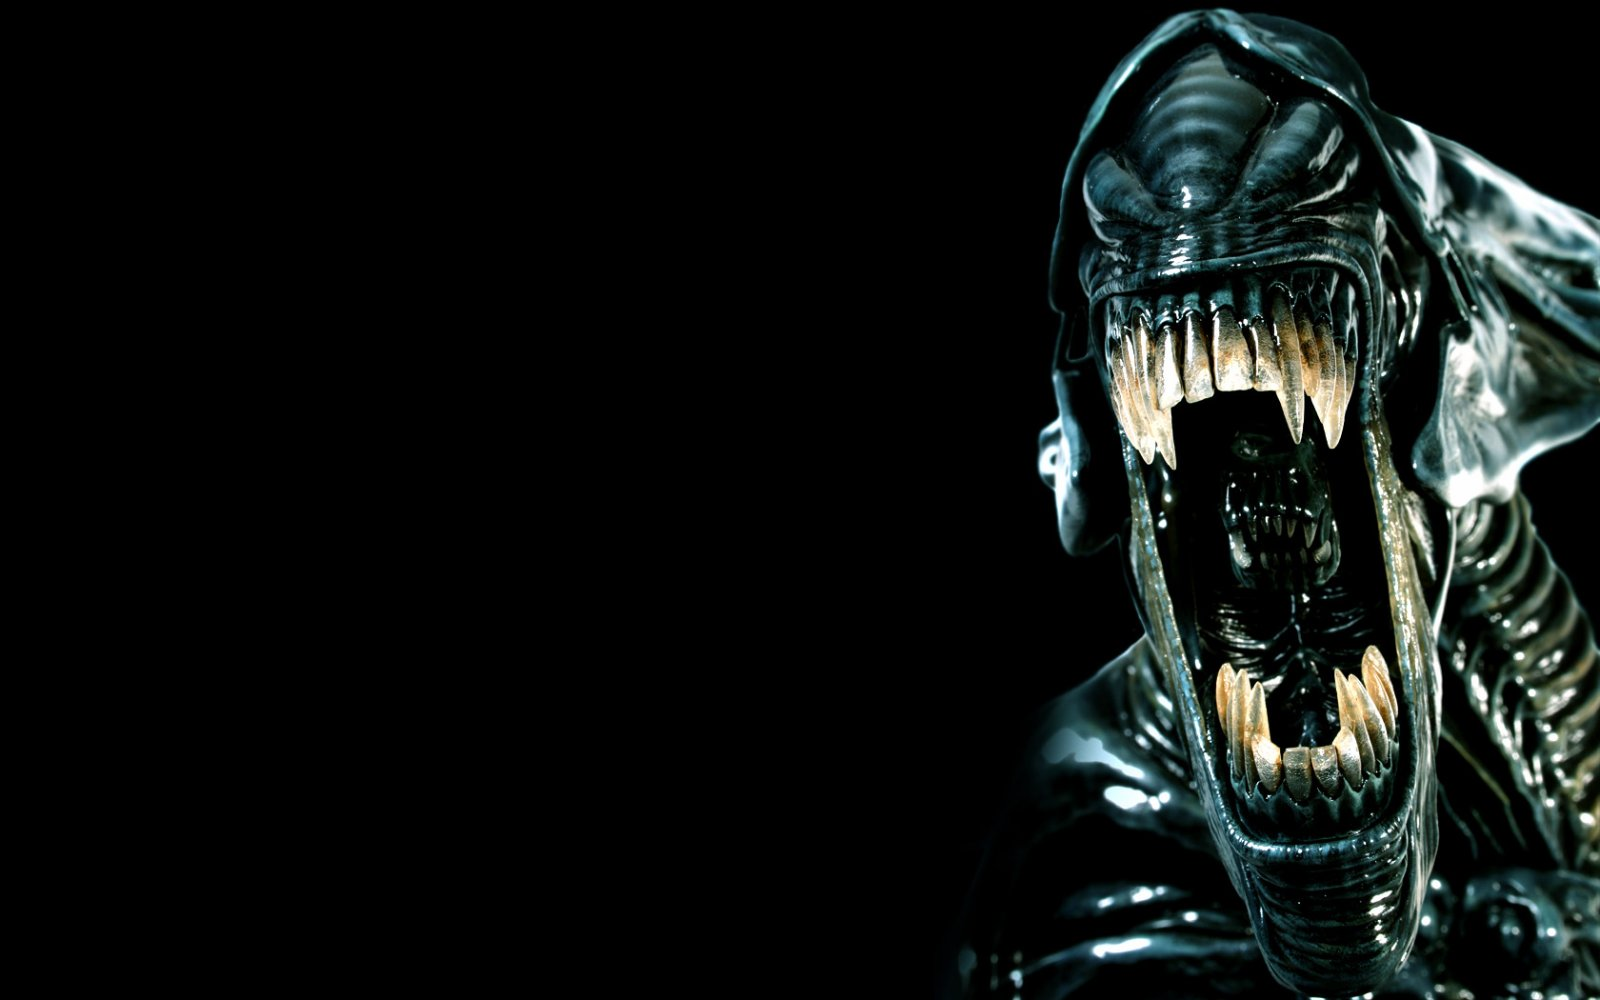 Aliens Wallpaper HD Wallpapers Aliens Wallpapers 63jpg 1600x1000